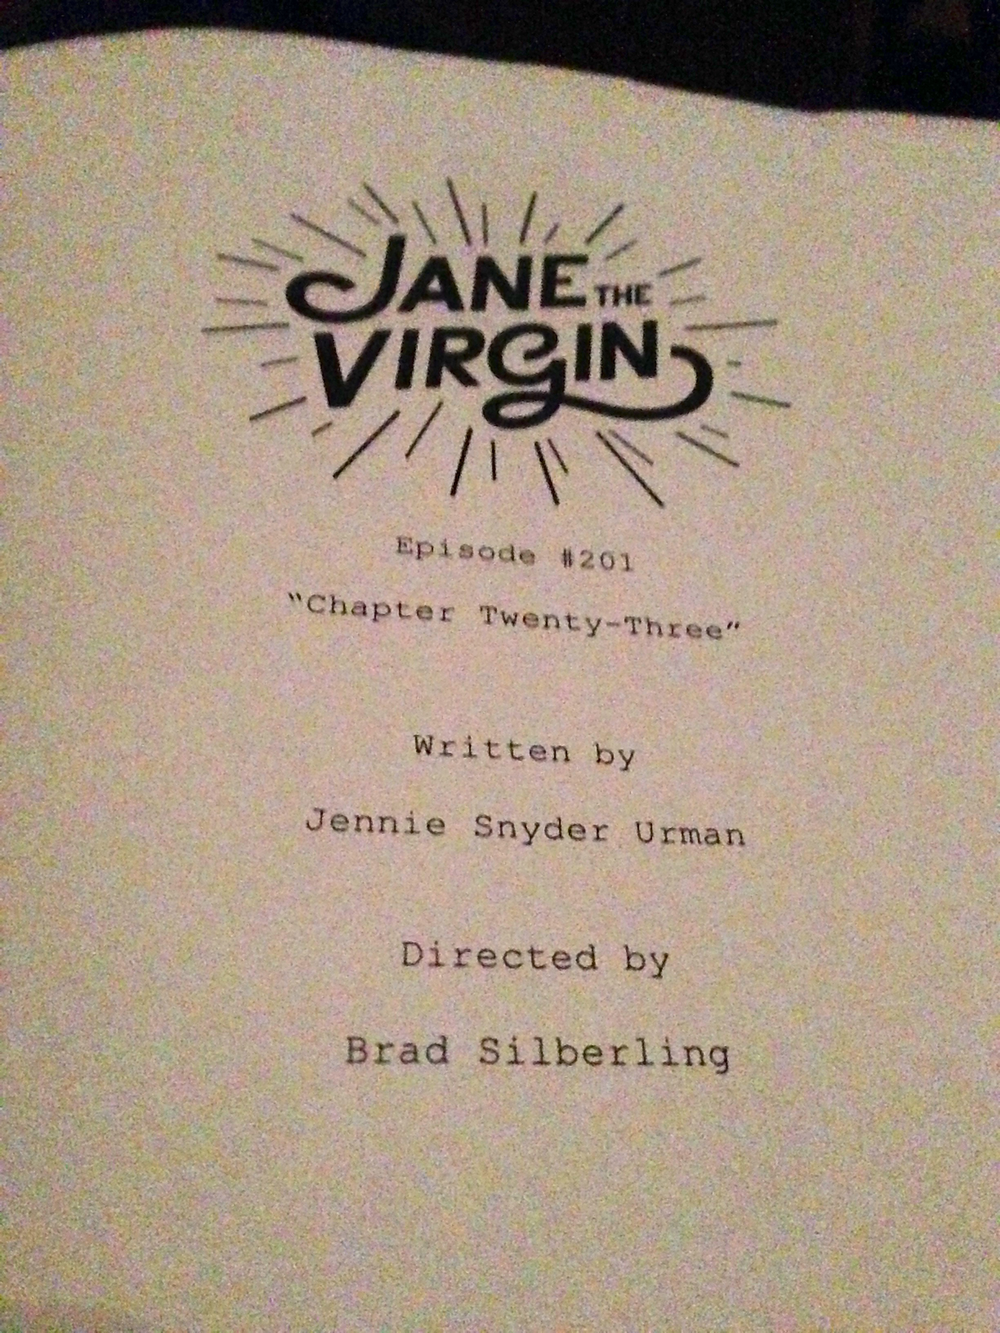 We were given a copy of the script to follow along during  Jane the Virgin's  table read.